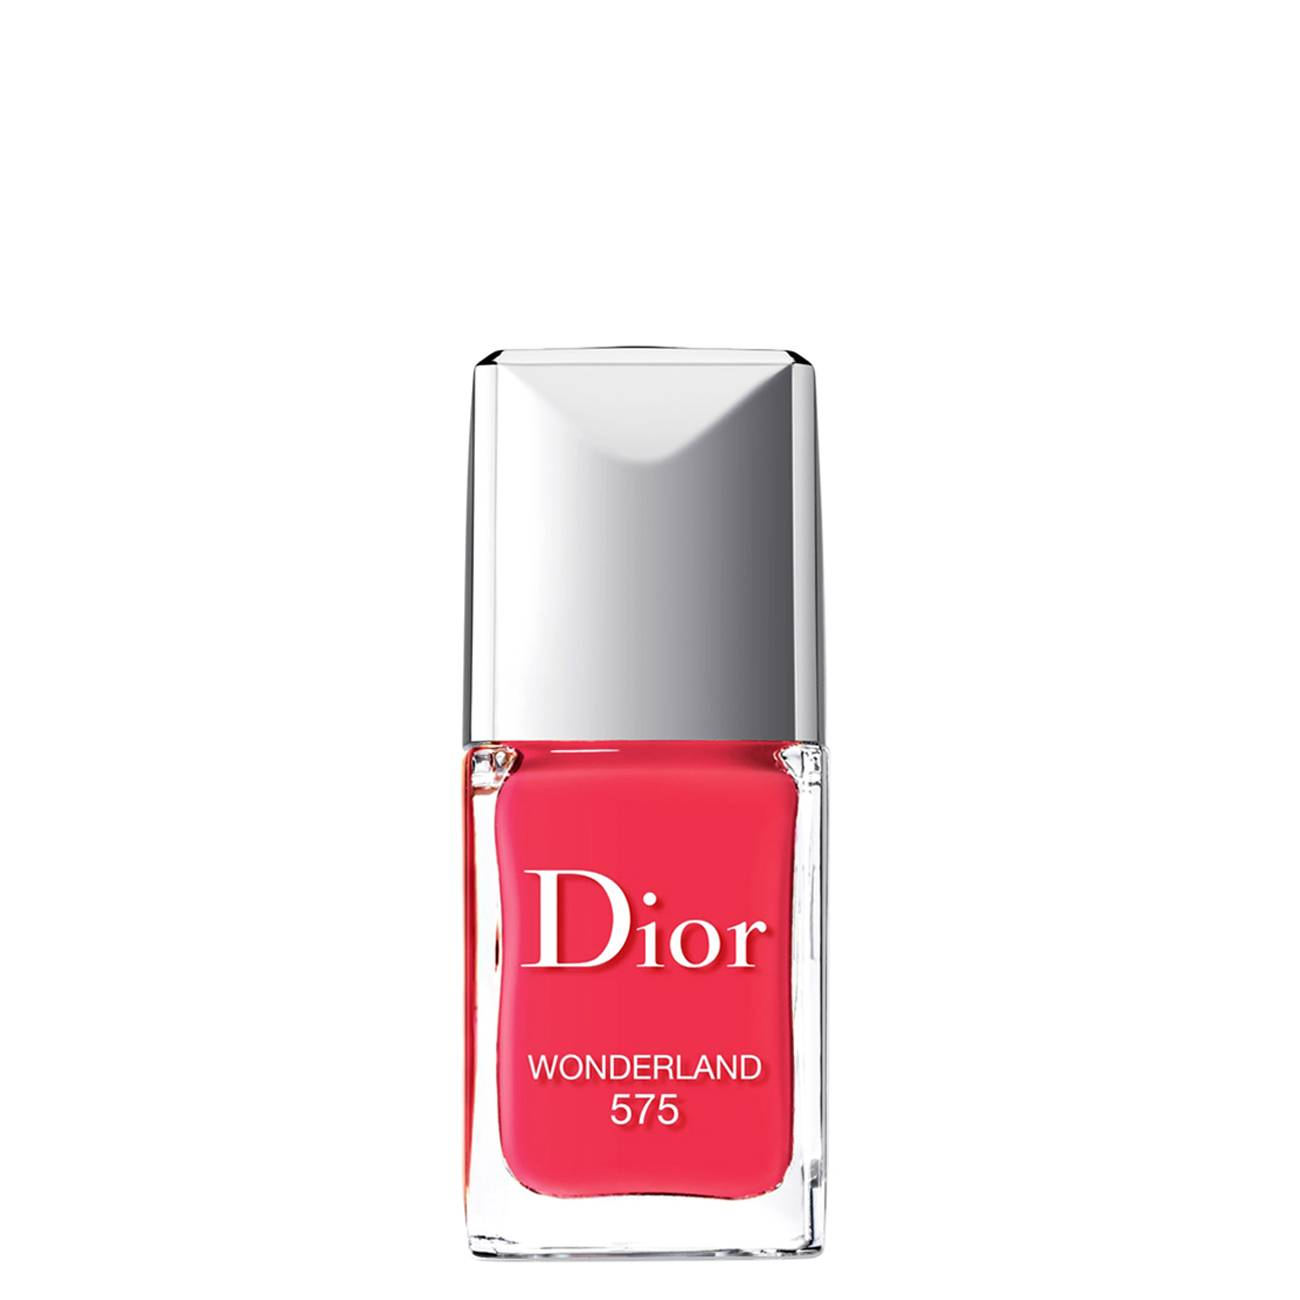 Vernis 575 10 Ml Dior imagine 2021 bestvalue.eu